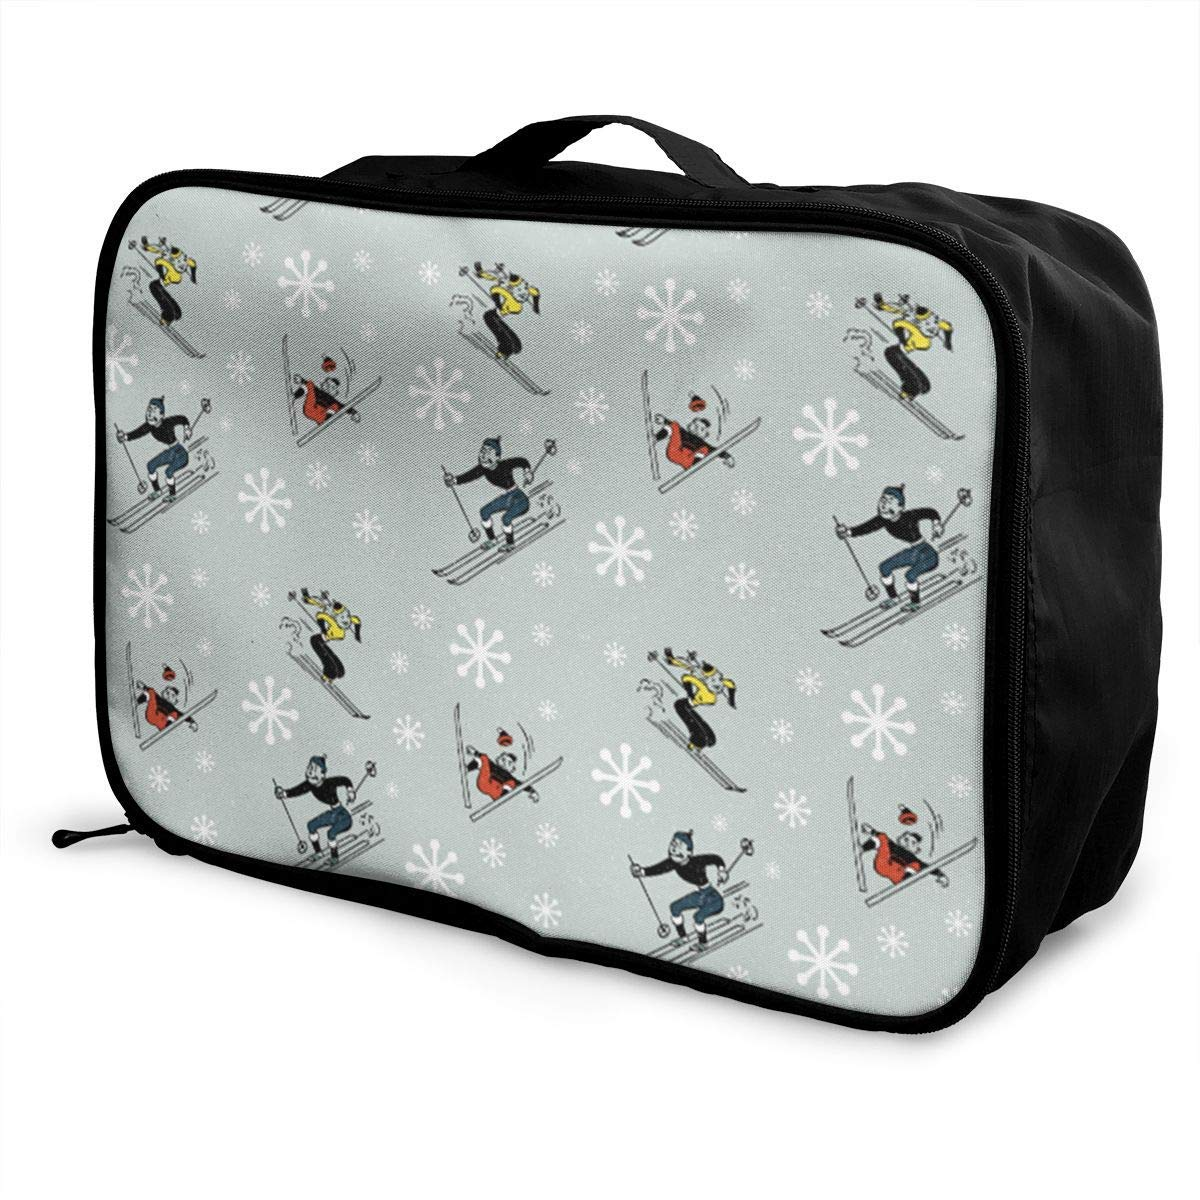 Portable Luggage Duffel Bag Retro Skiing Travel Bags Carry-on In Trolley Handle